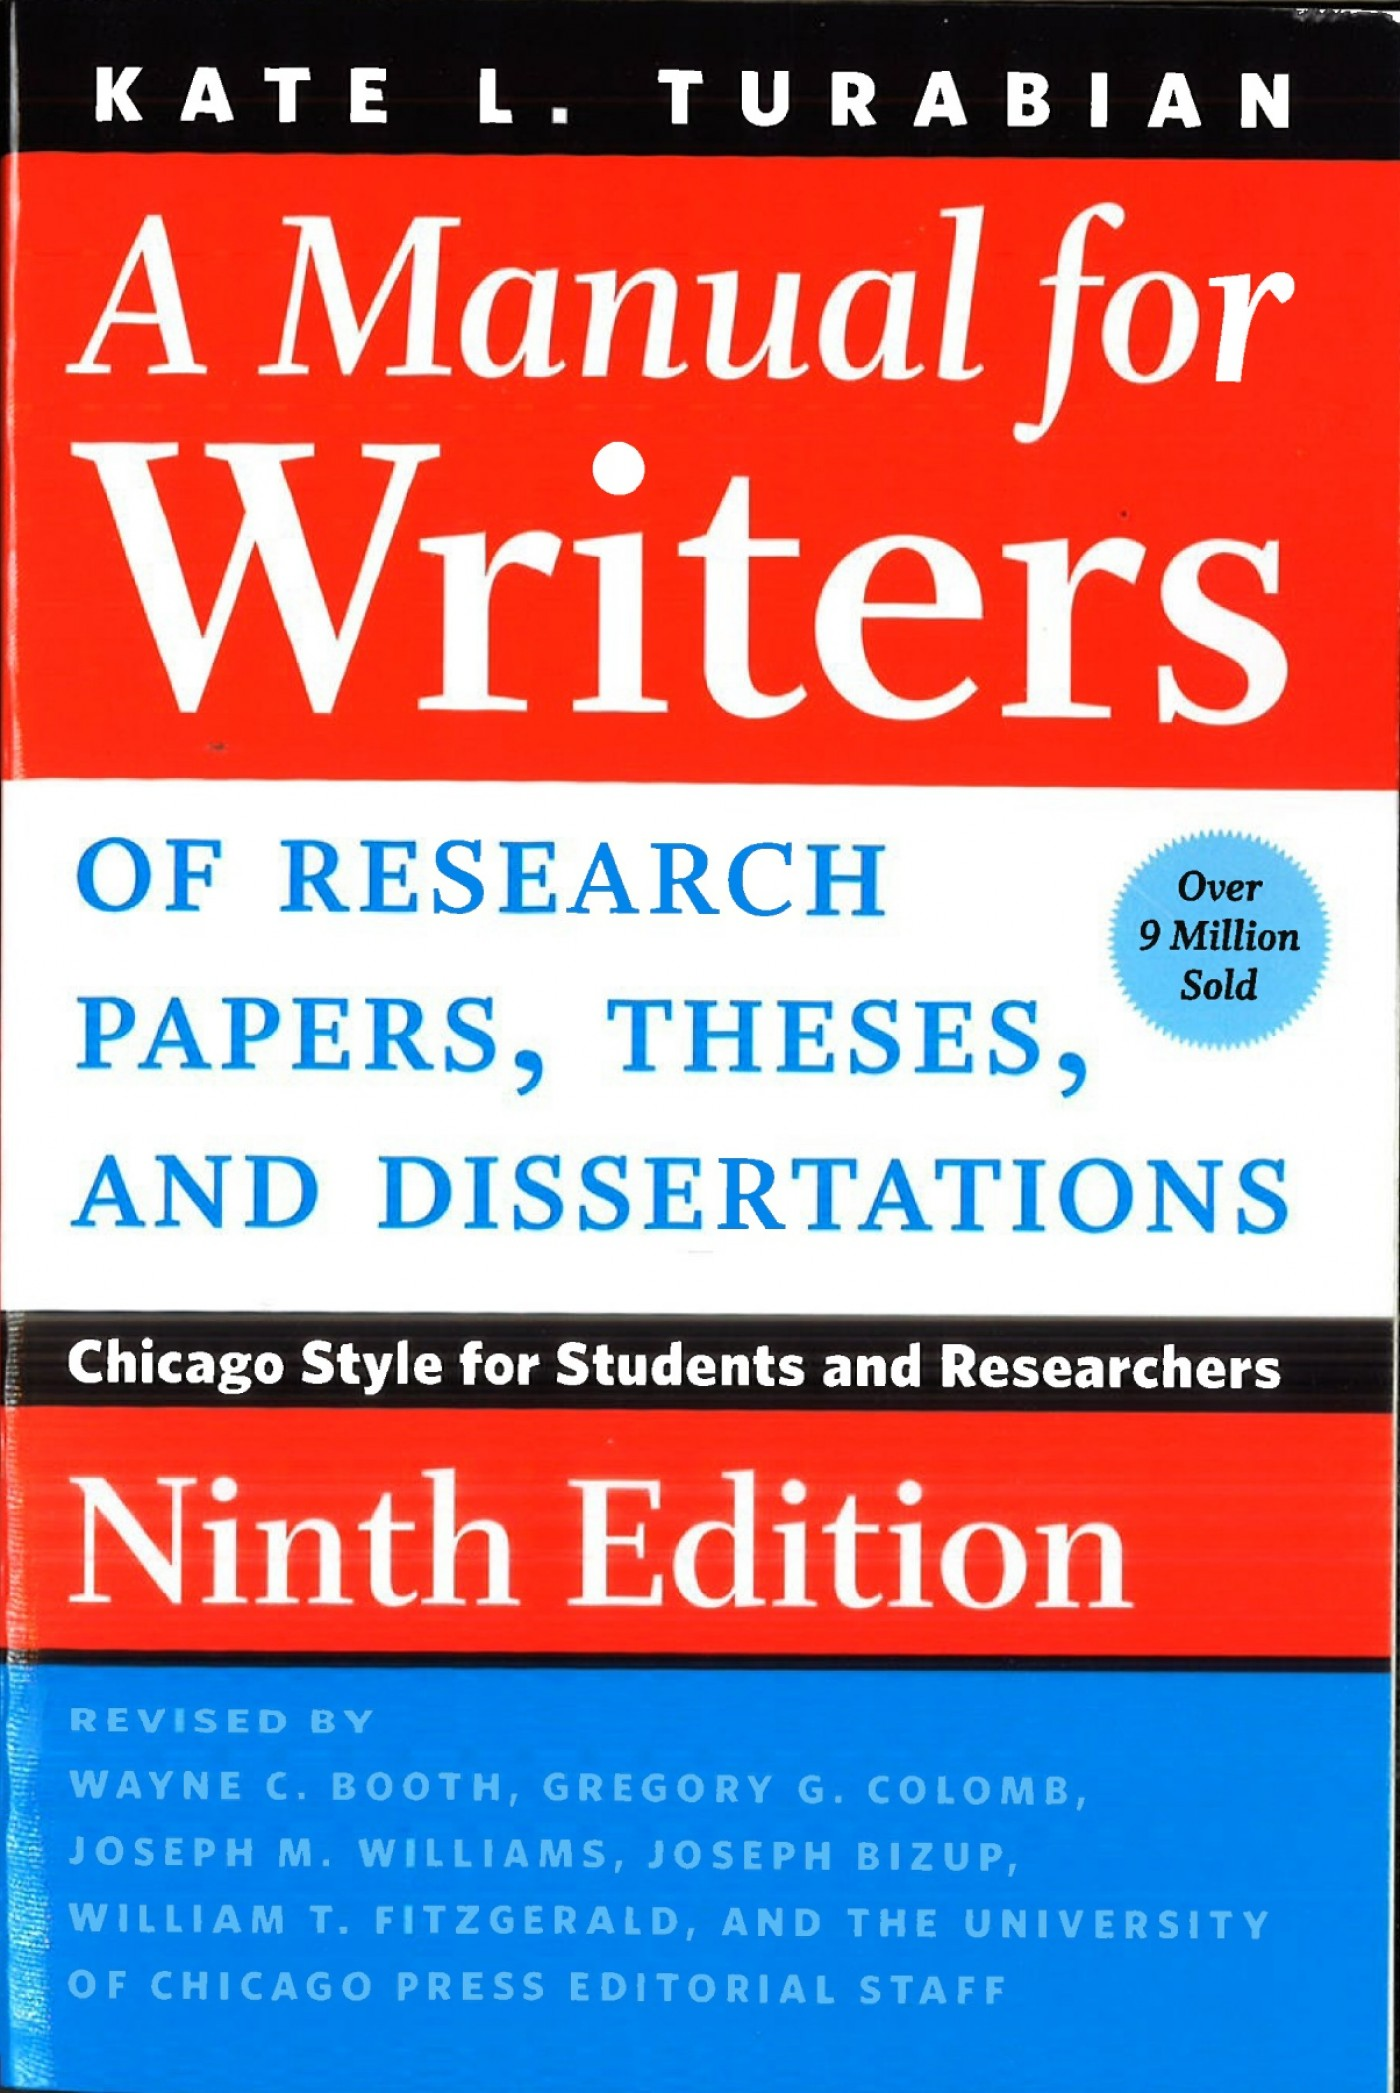 007 Research Paper Manual For Writers Of Papers Theses And Dissertations Amazing A Turabian Pdf 1400